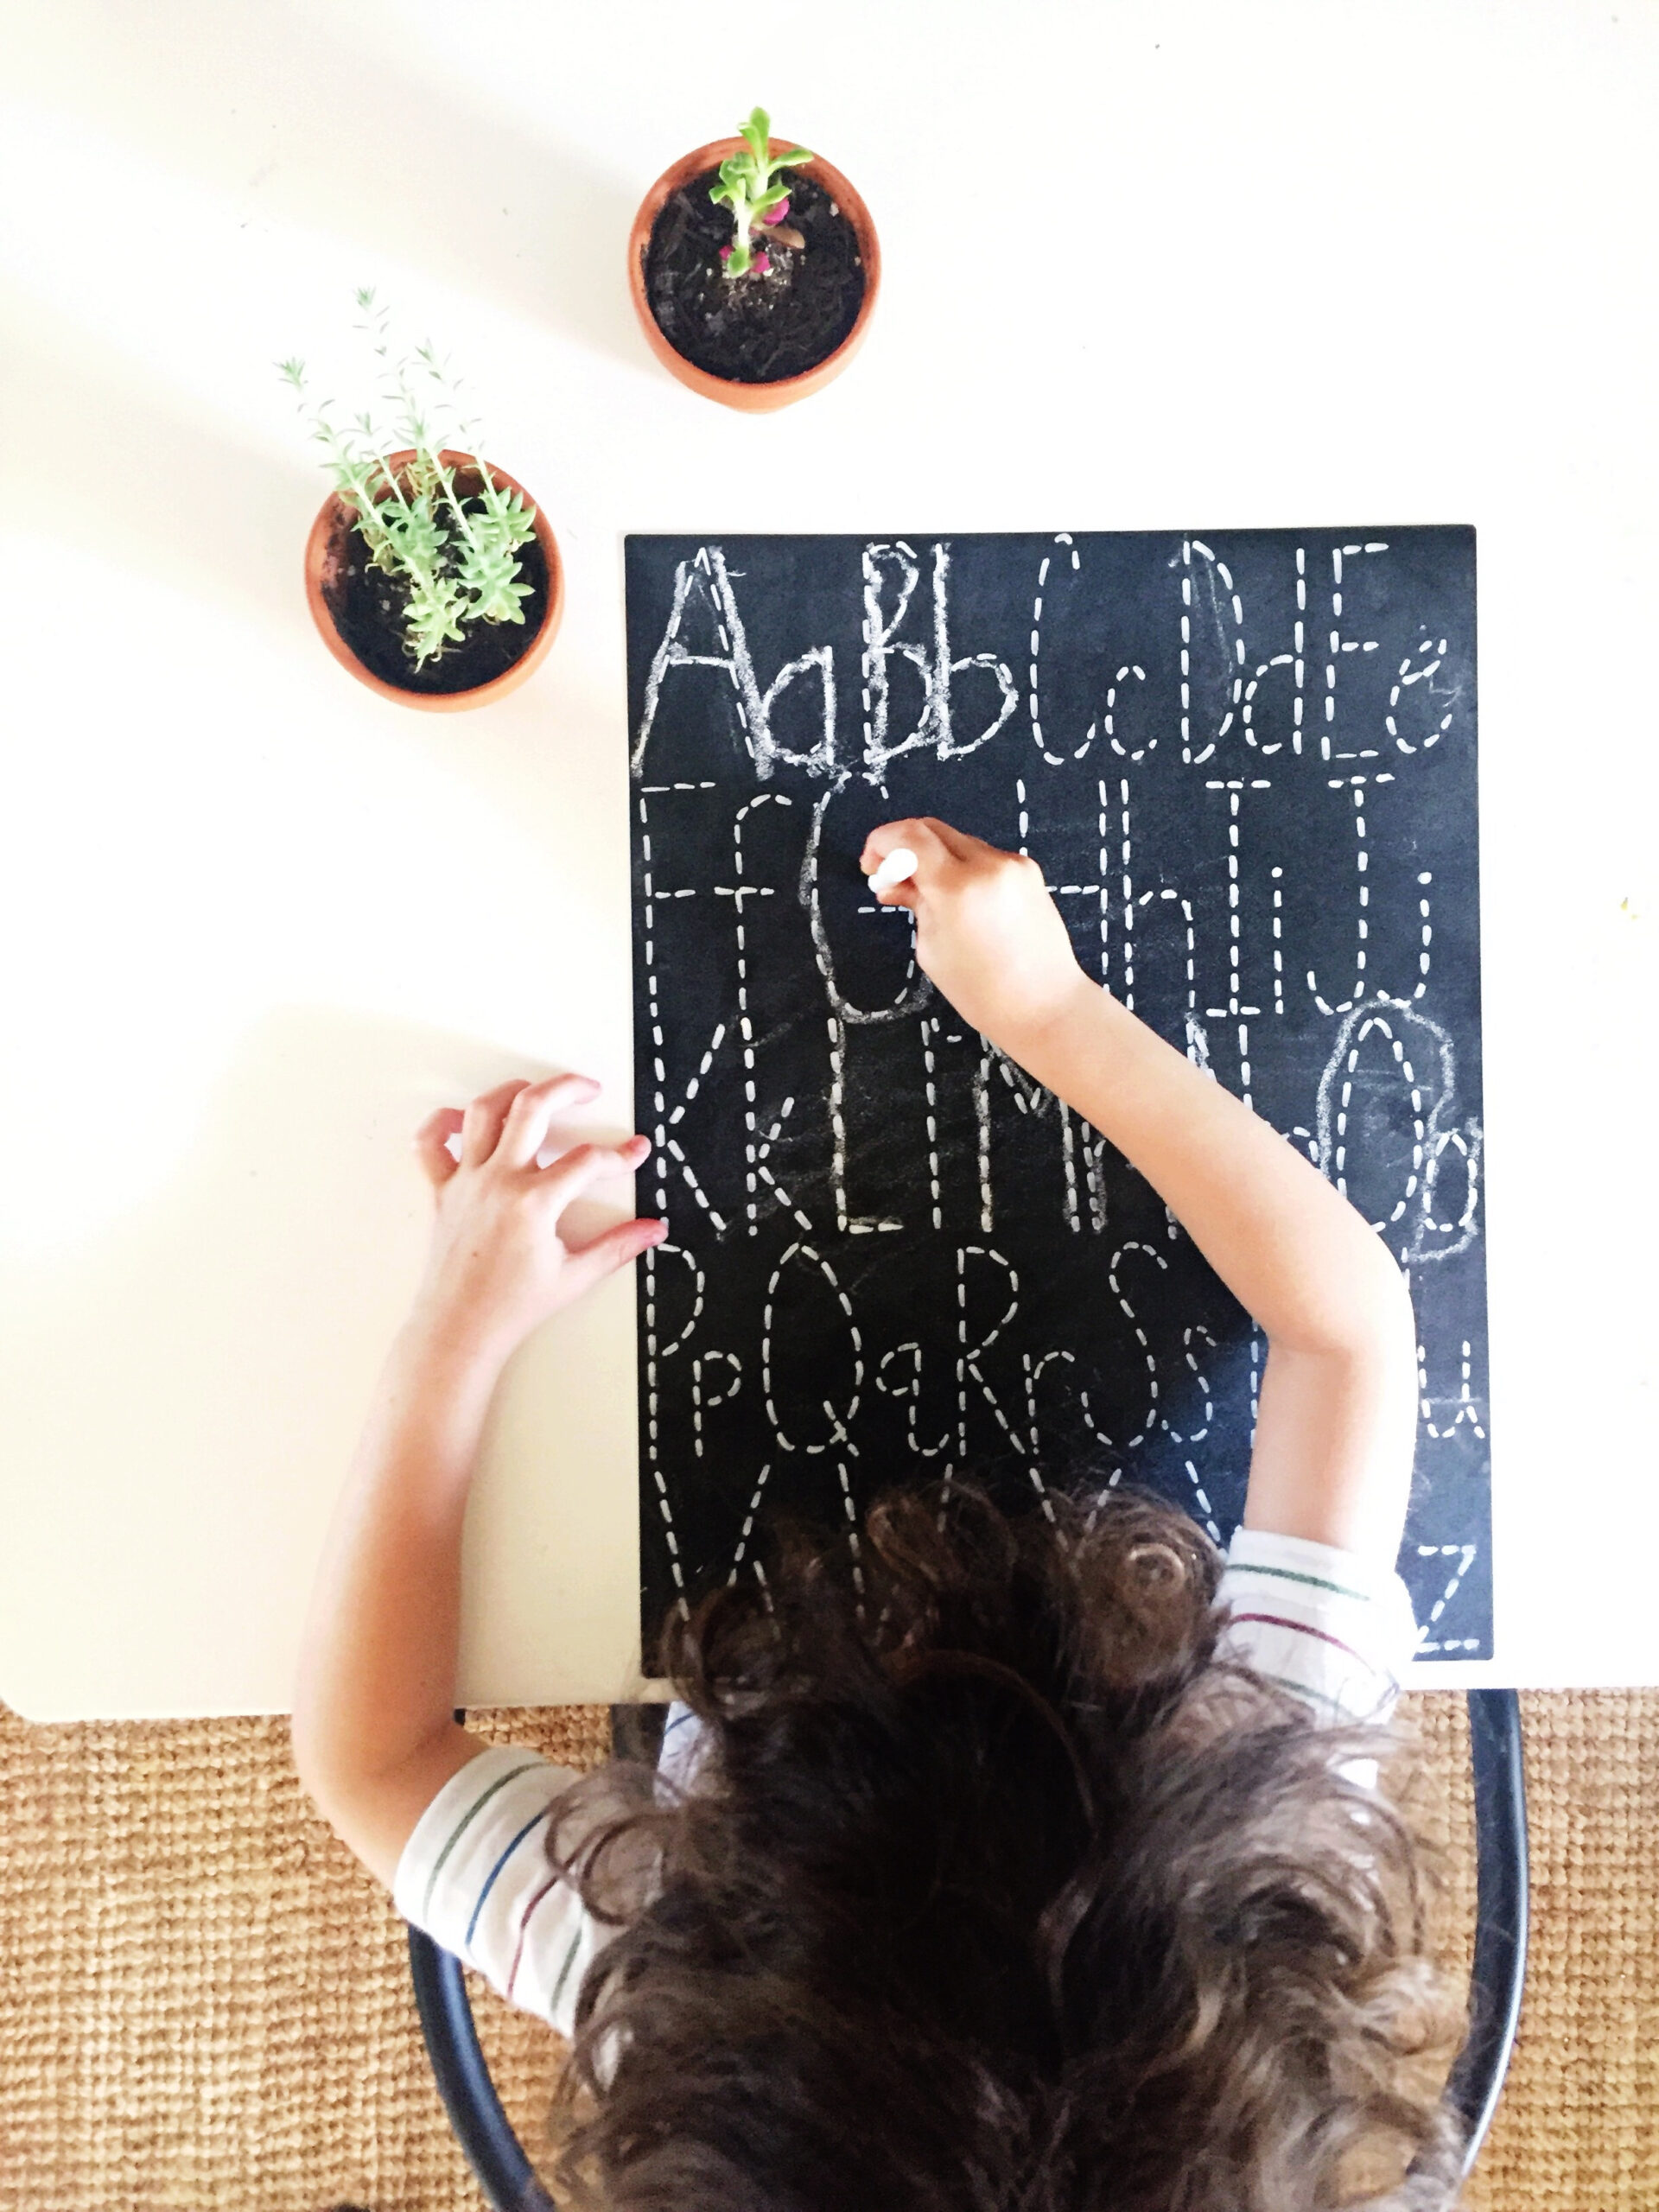 Letter Tracing Chalkboard Diy - Angela Cheatwood throughout Name Tracing Chalkboard